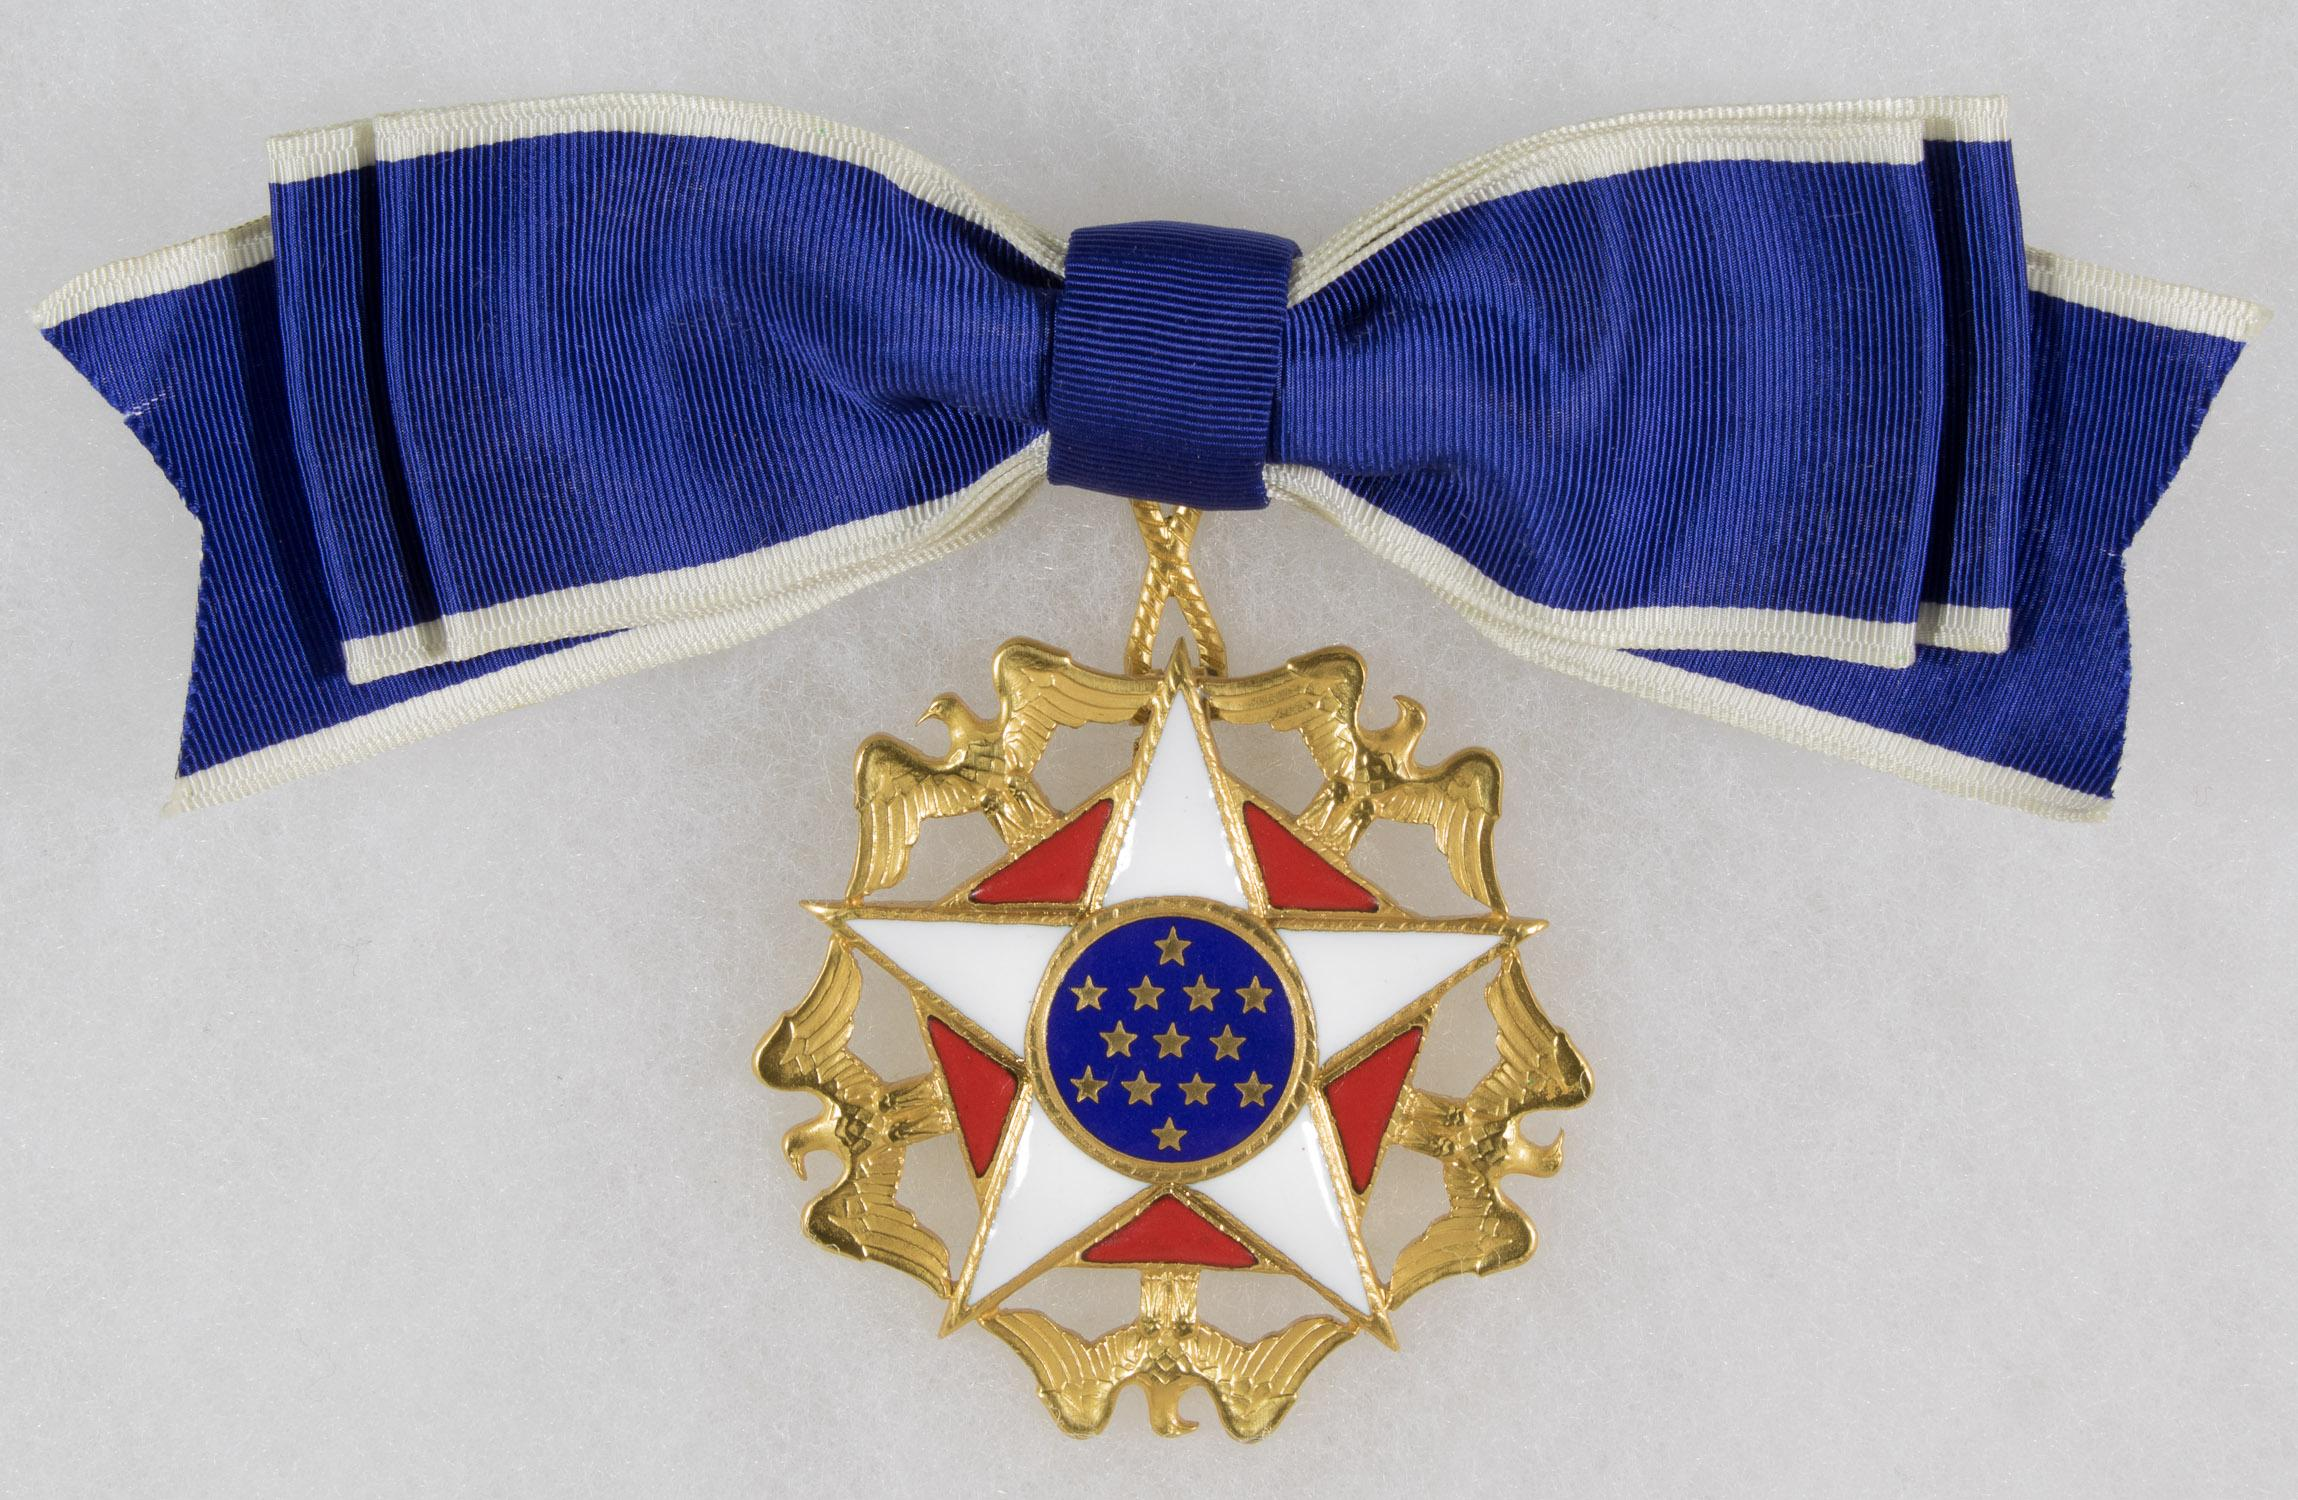 PRESIDENTIAL MEDAL OF FREEDOM PRESENTED TO ACTRESS MARTHA RAYE